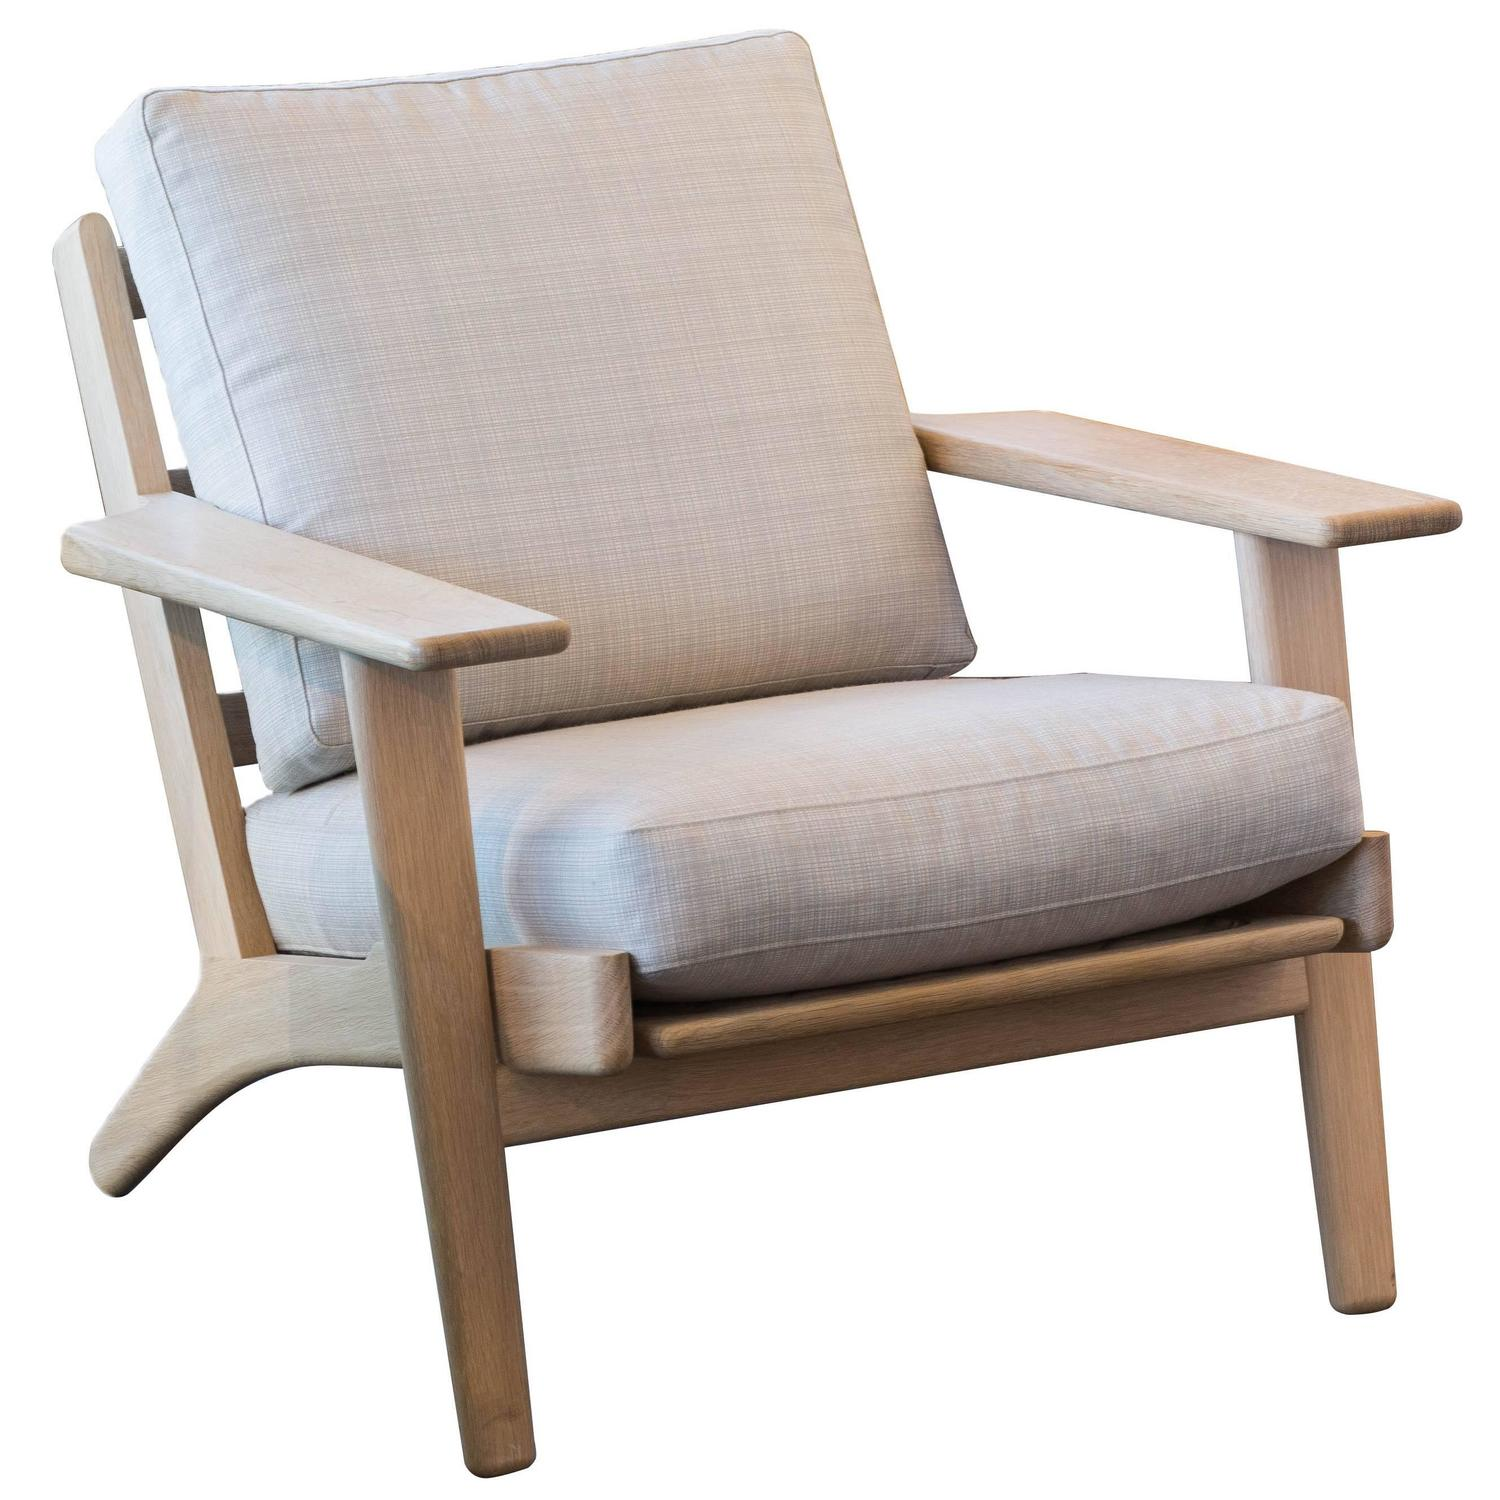 Hans J Wegner GE 290 Chair For Sale at 1stdibs